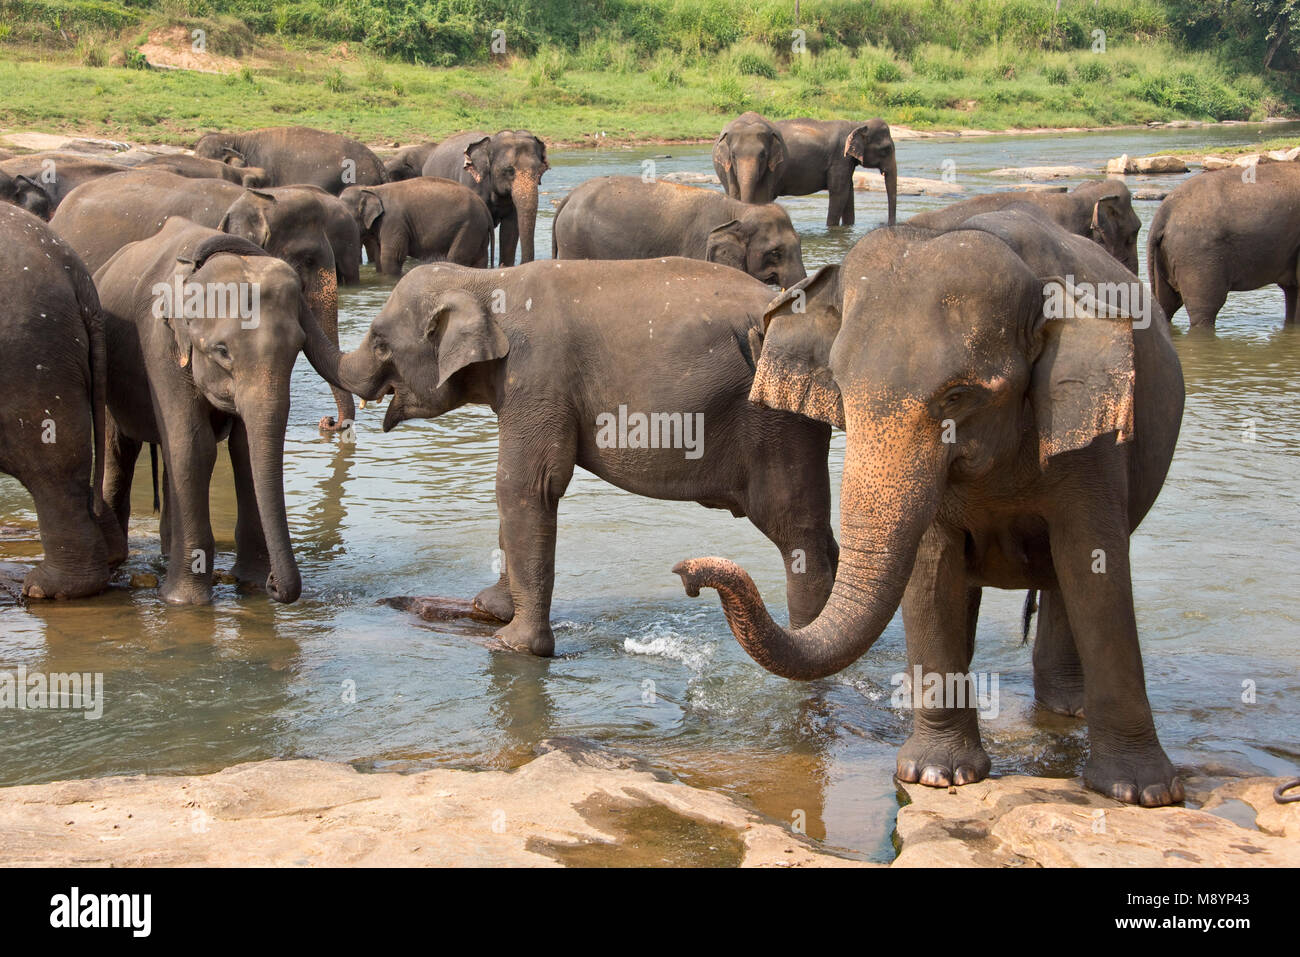 Sri Lankan elephants from the Pinnawala Elephant Orphanage bathing in the river nearby. - Stock Image